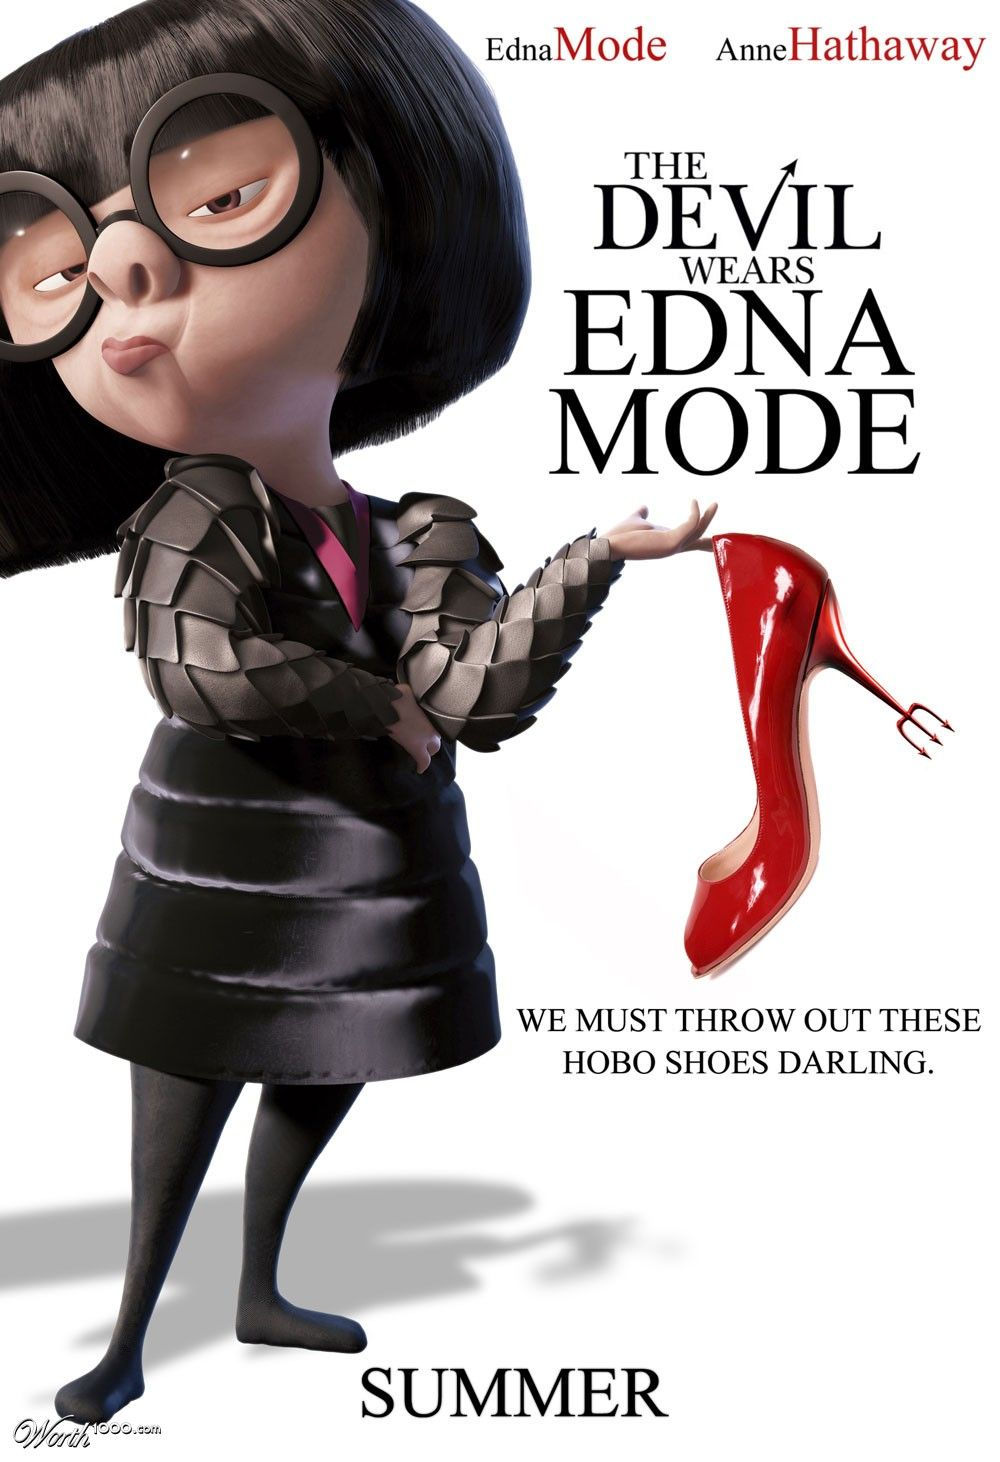 prada shoes men 11 syndrome incredibles quotes edna